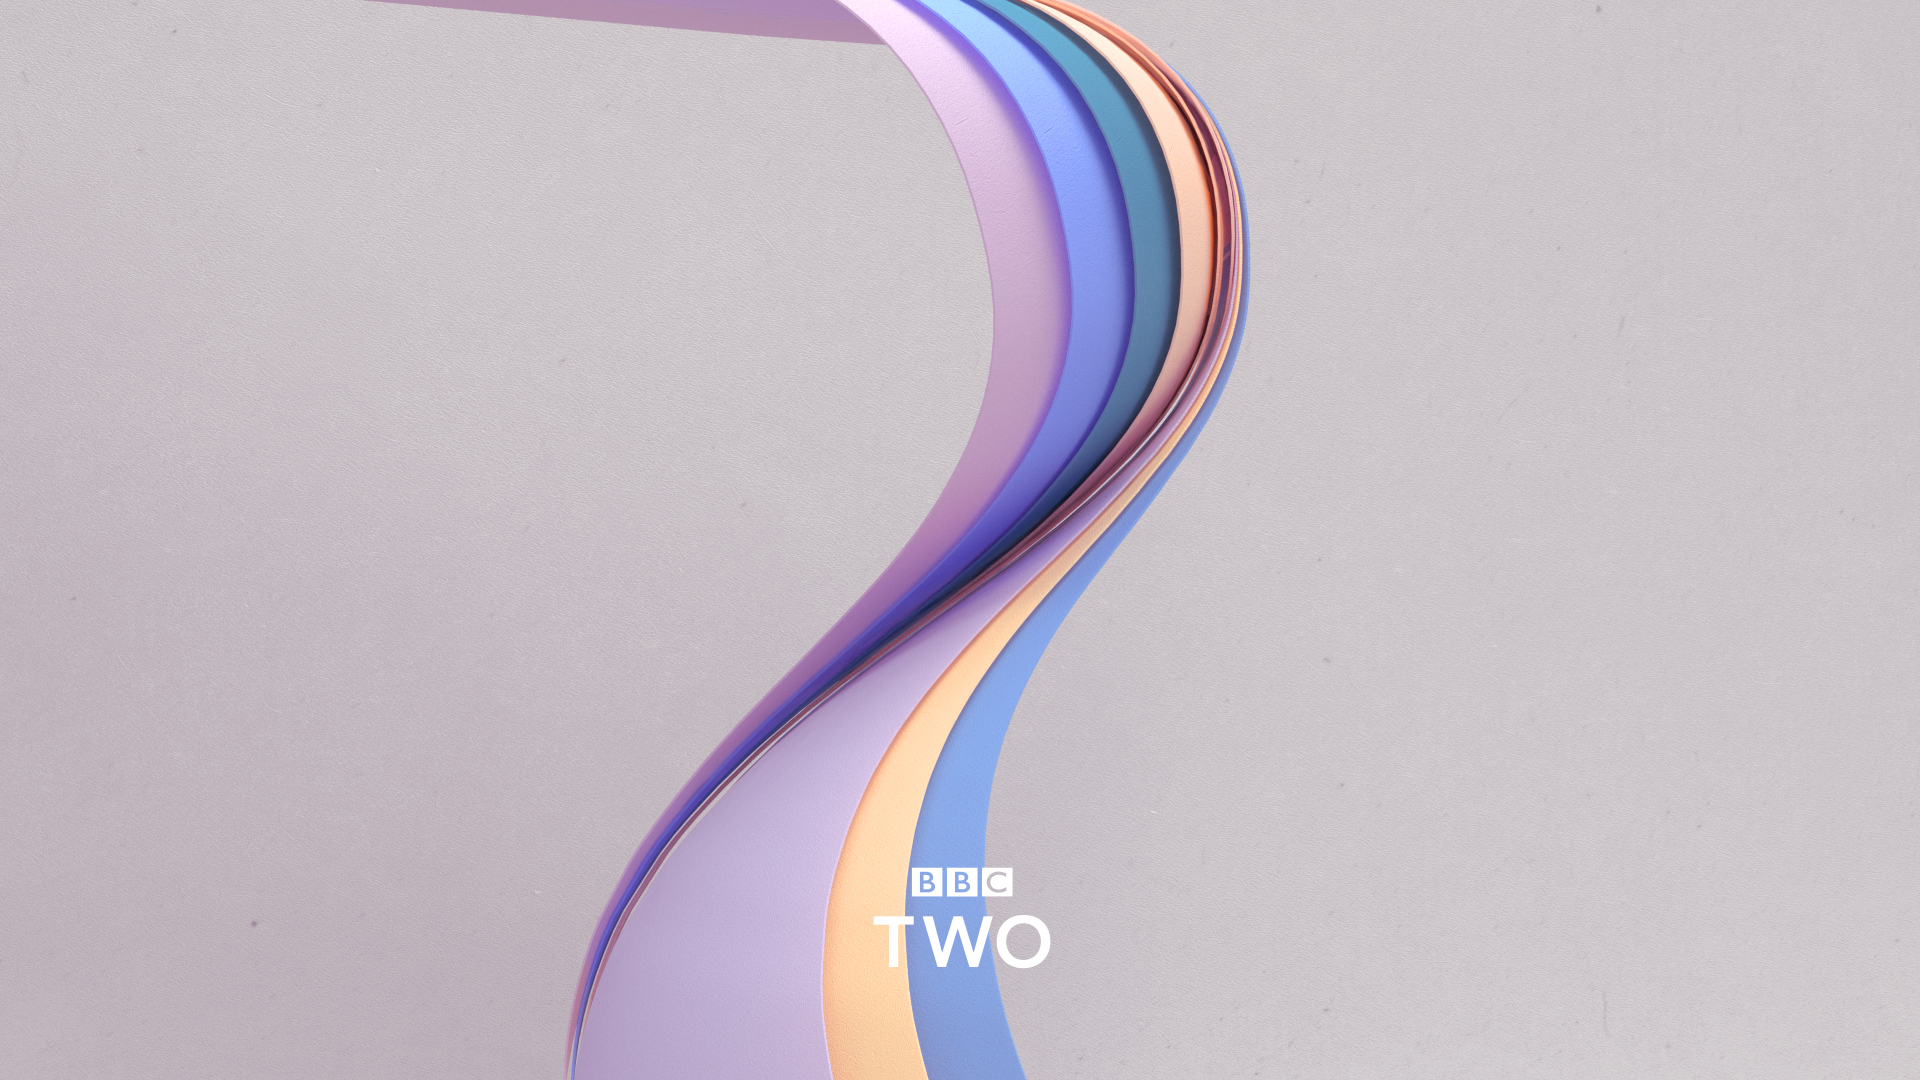 BBC_two_06